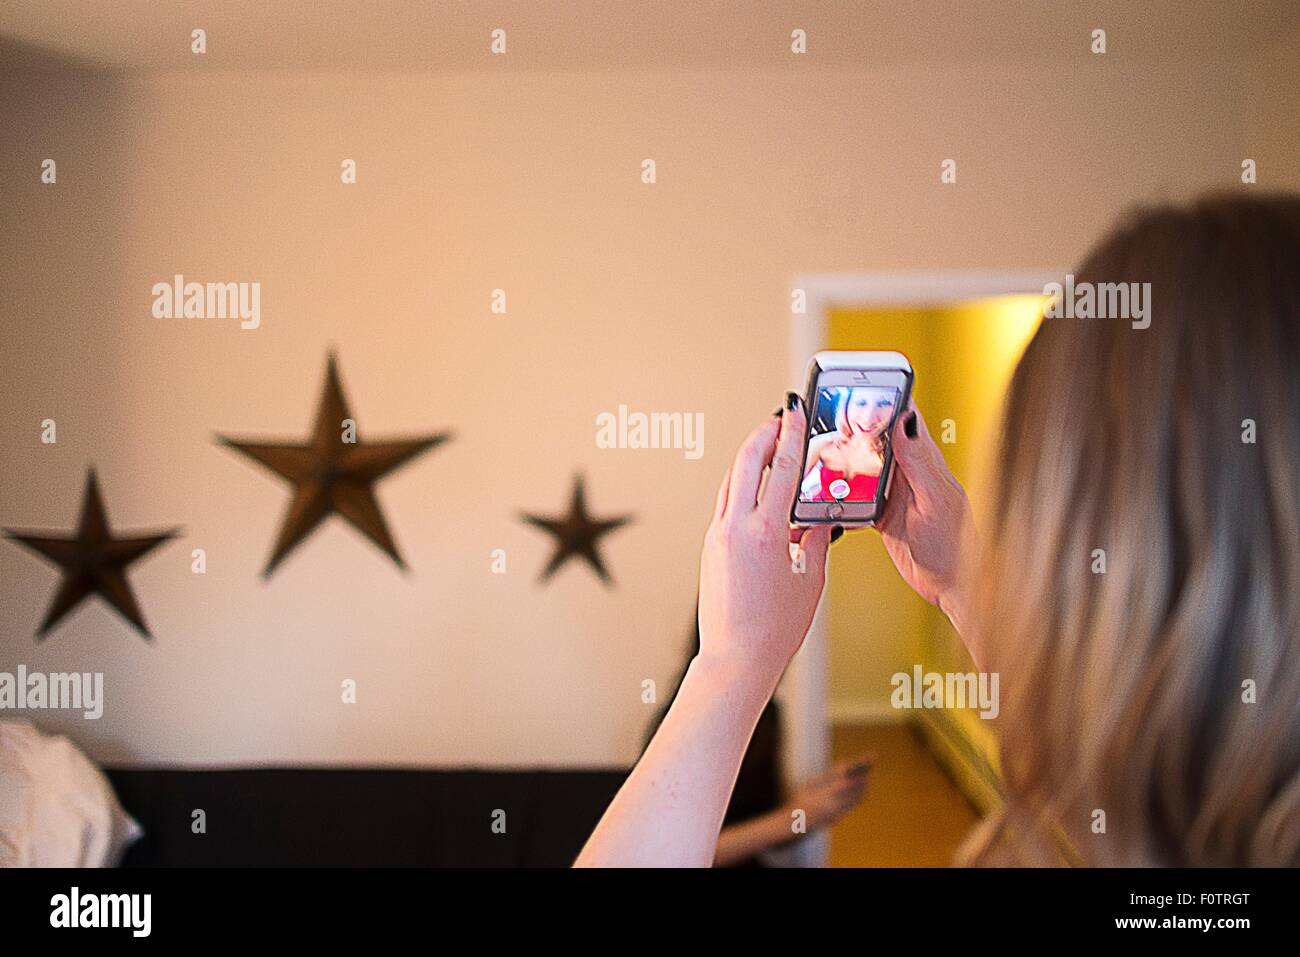 Over shoulder view of young woman taking smartphone selfie - Stock Image